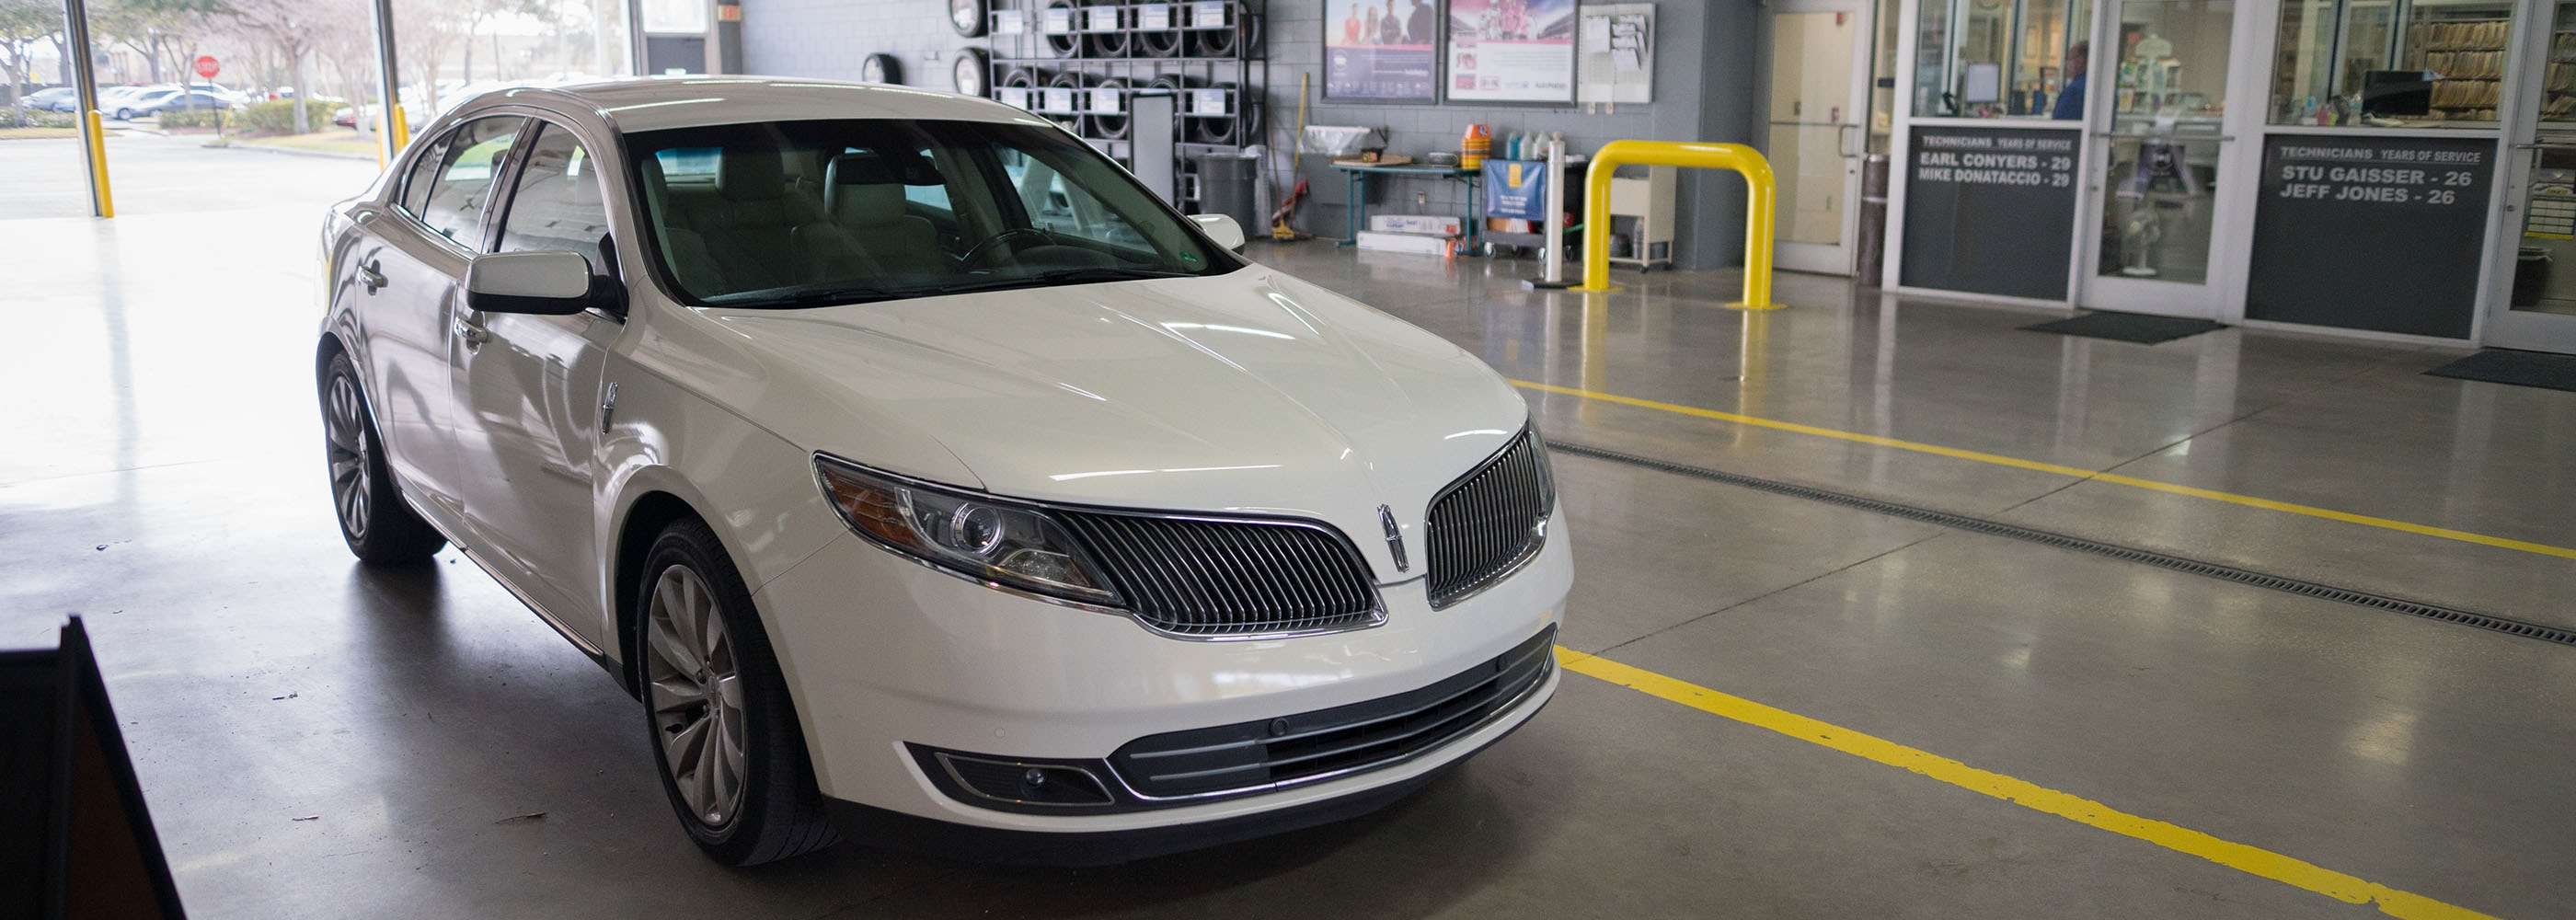 Lincoln Service Center Near Me In Clearwater Autonation Lincoln